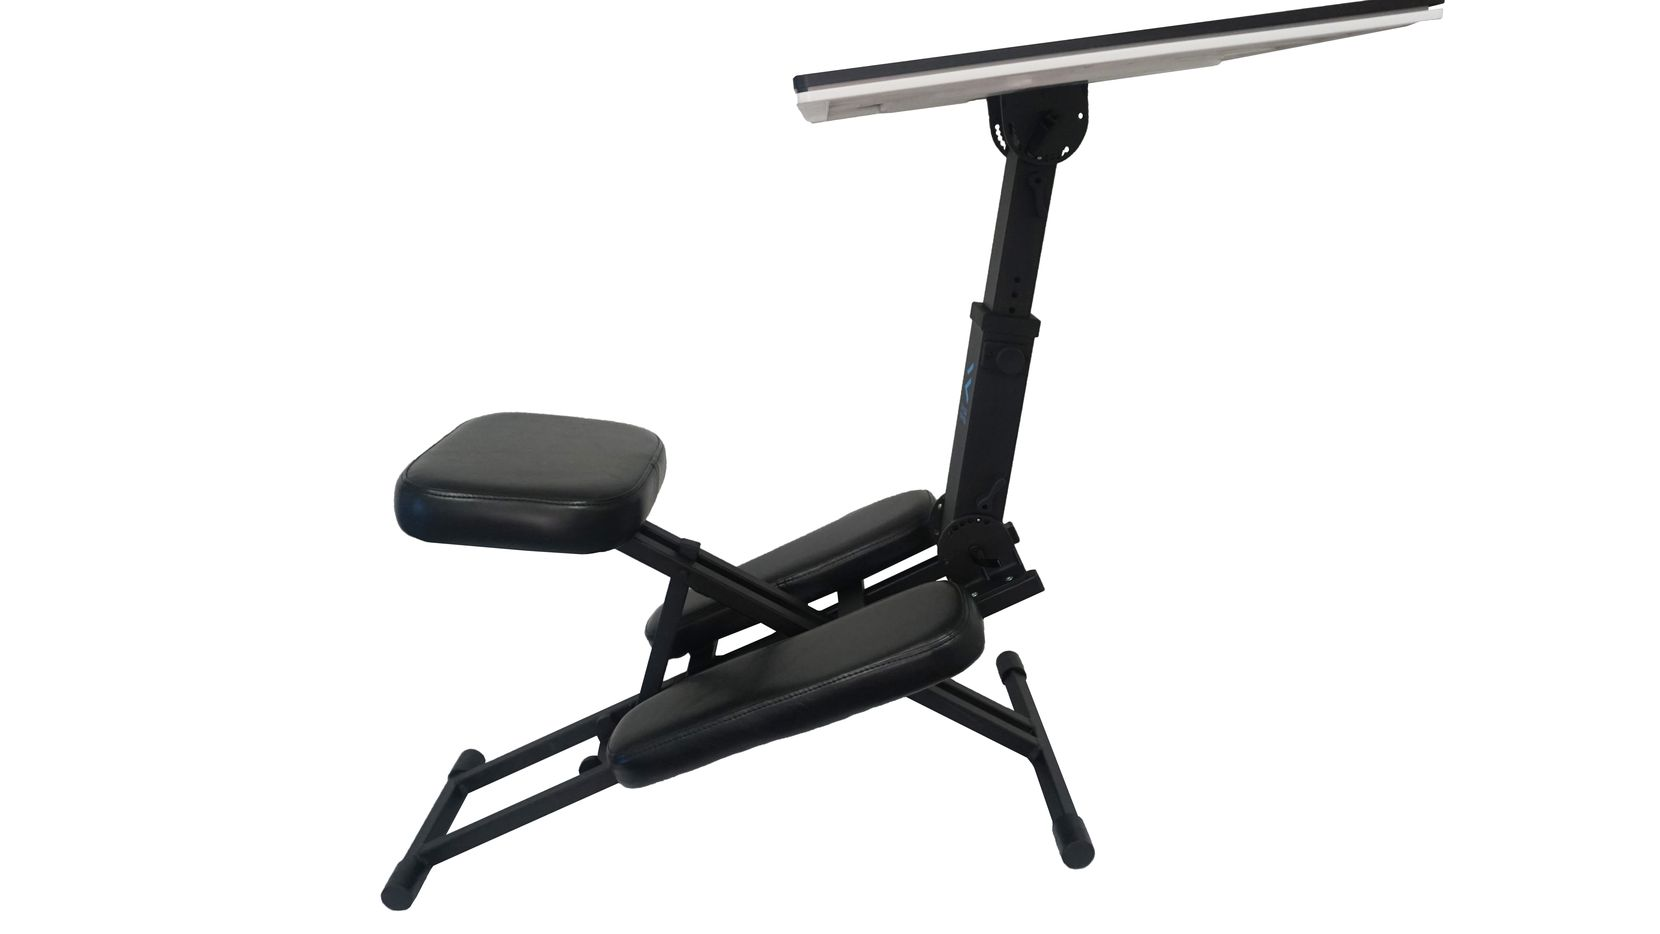 The Edge Desk has a seating position that takes the strain off your back.